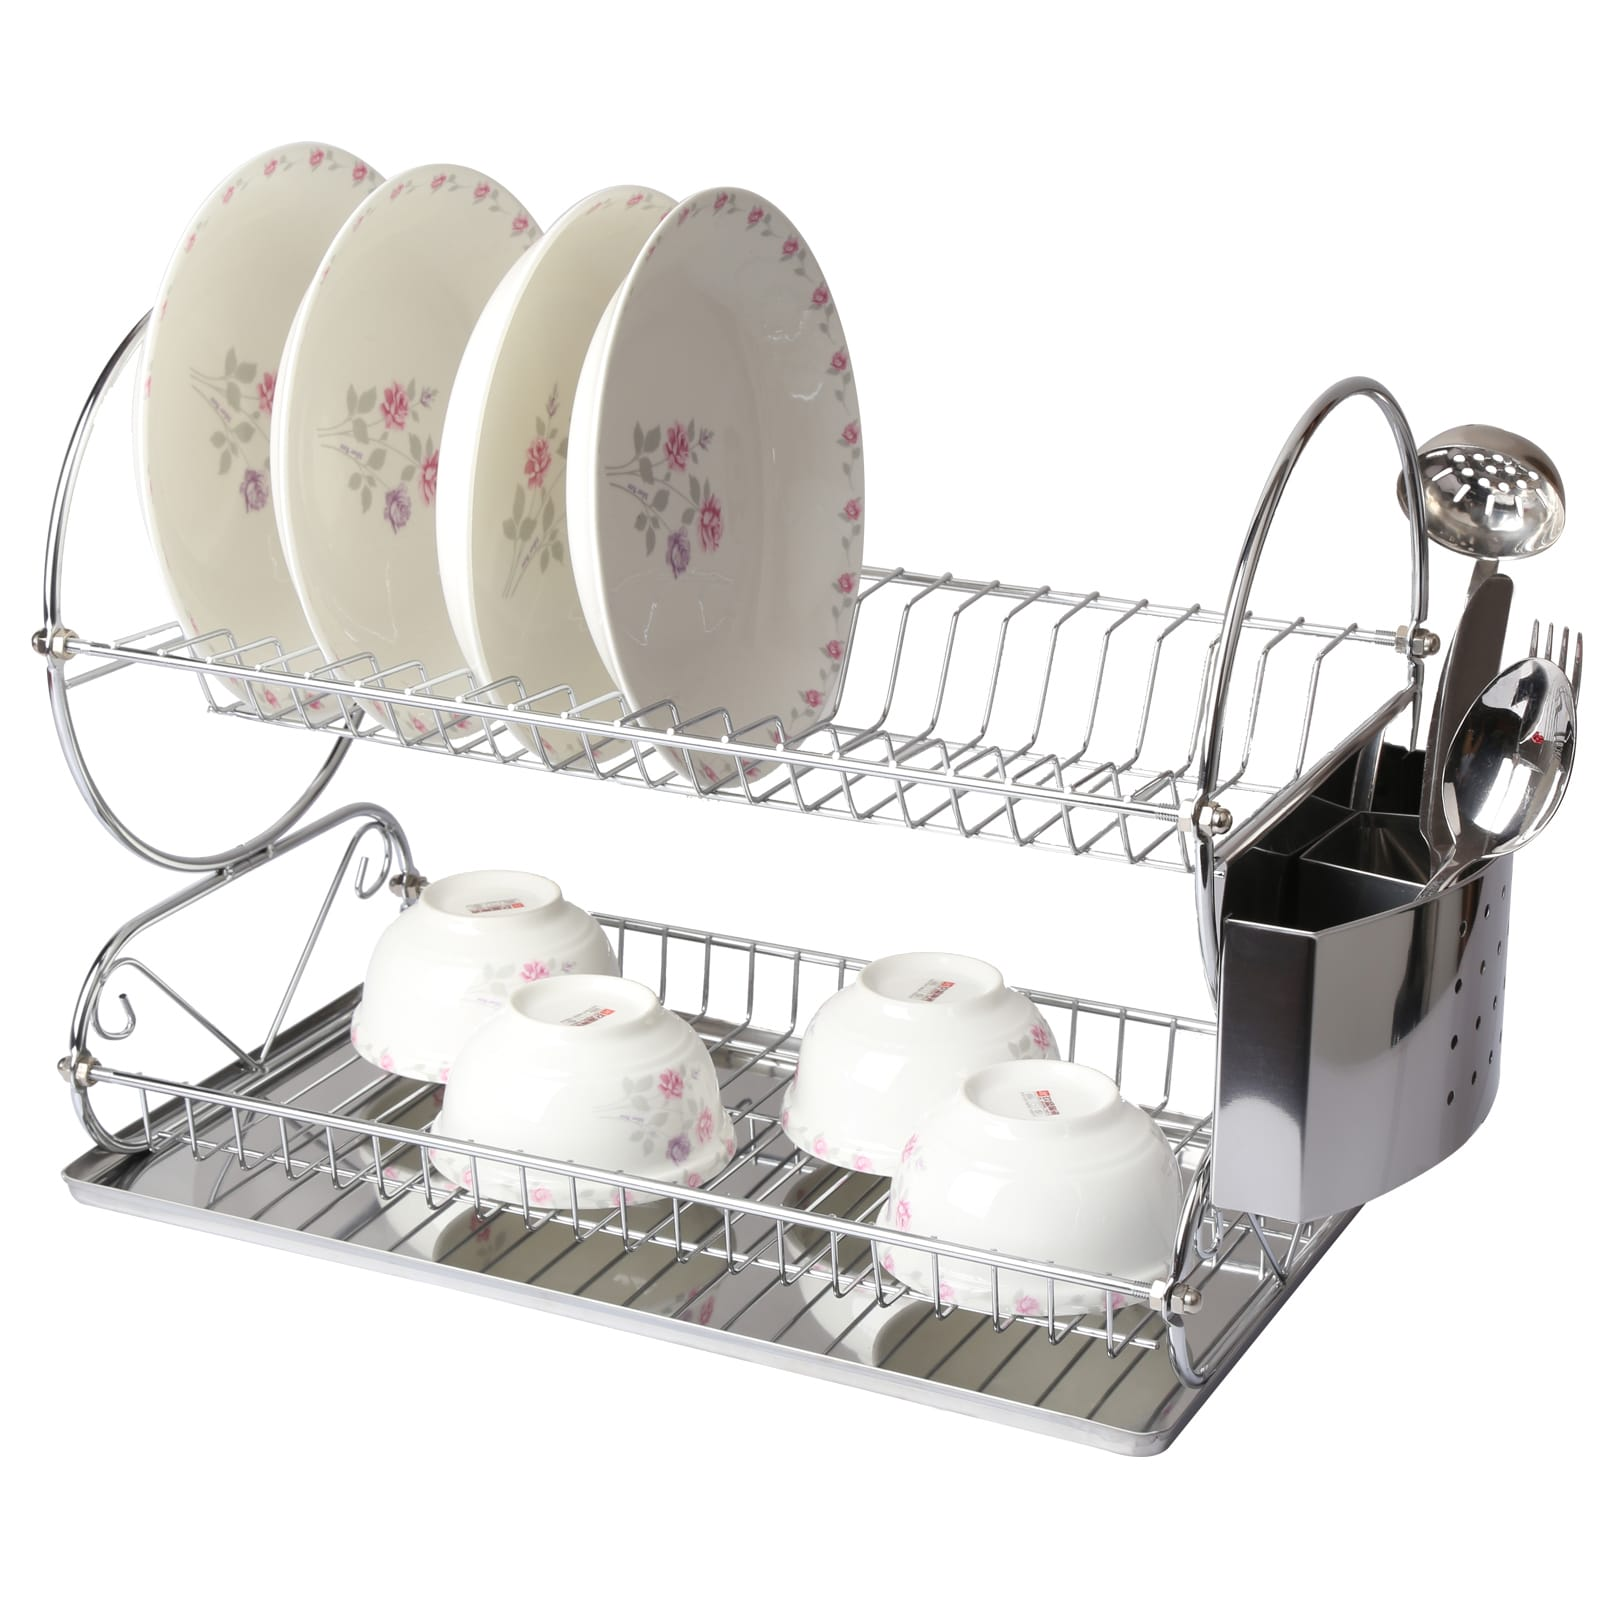 Mega Chef Chrome Plated 17.5 Inch Two Shelf Dish Rack by Supplier Generic